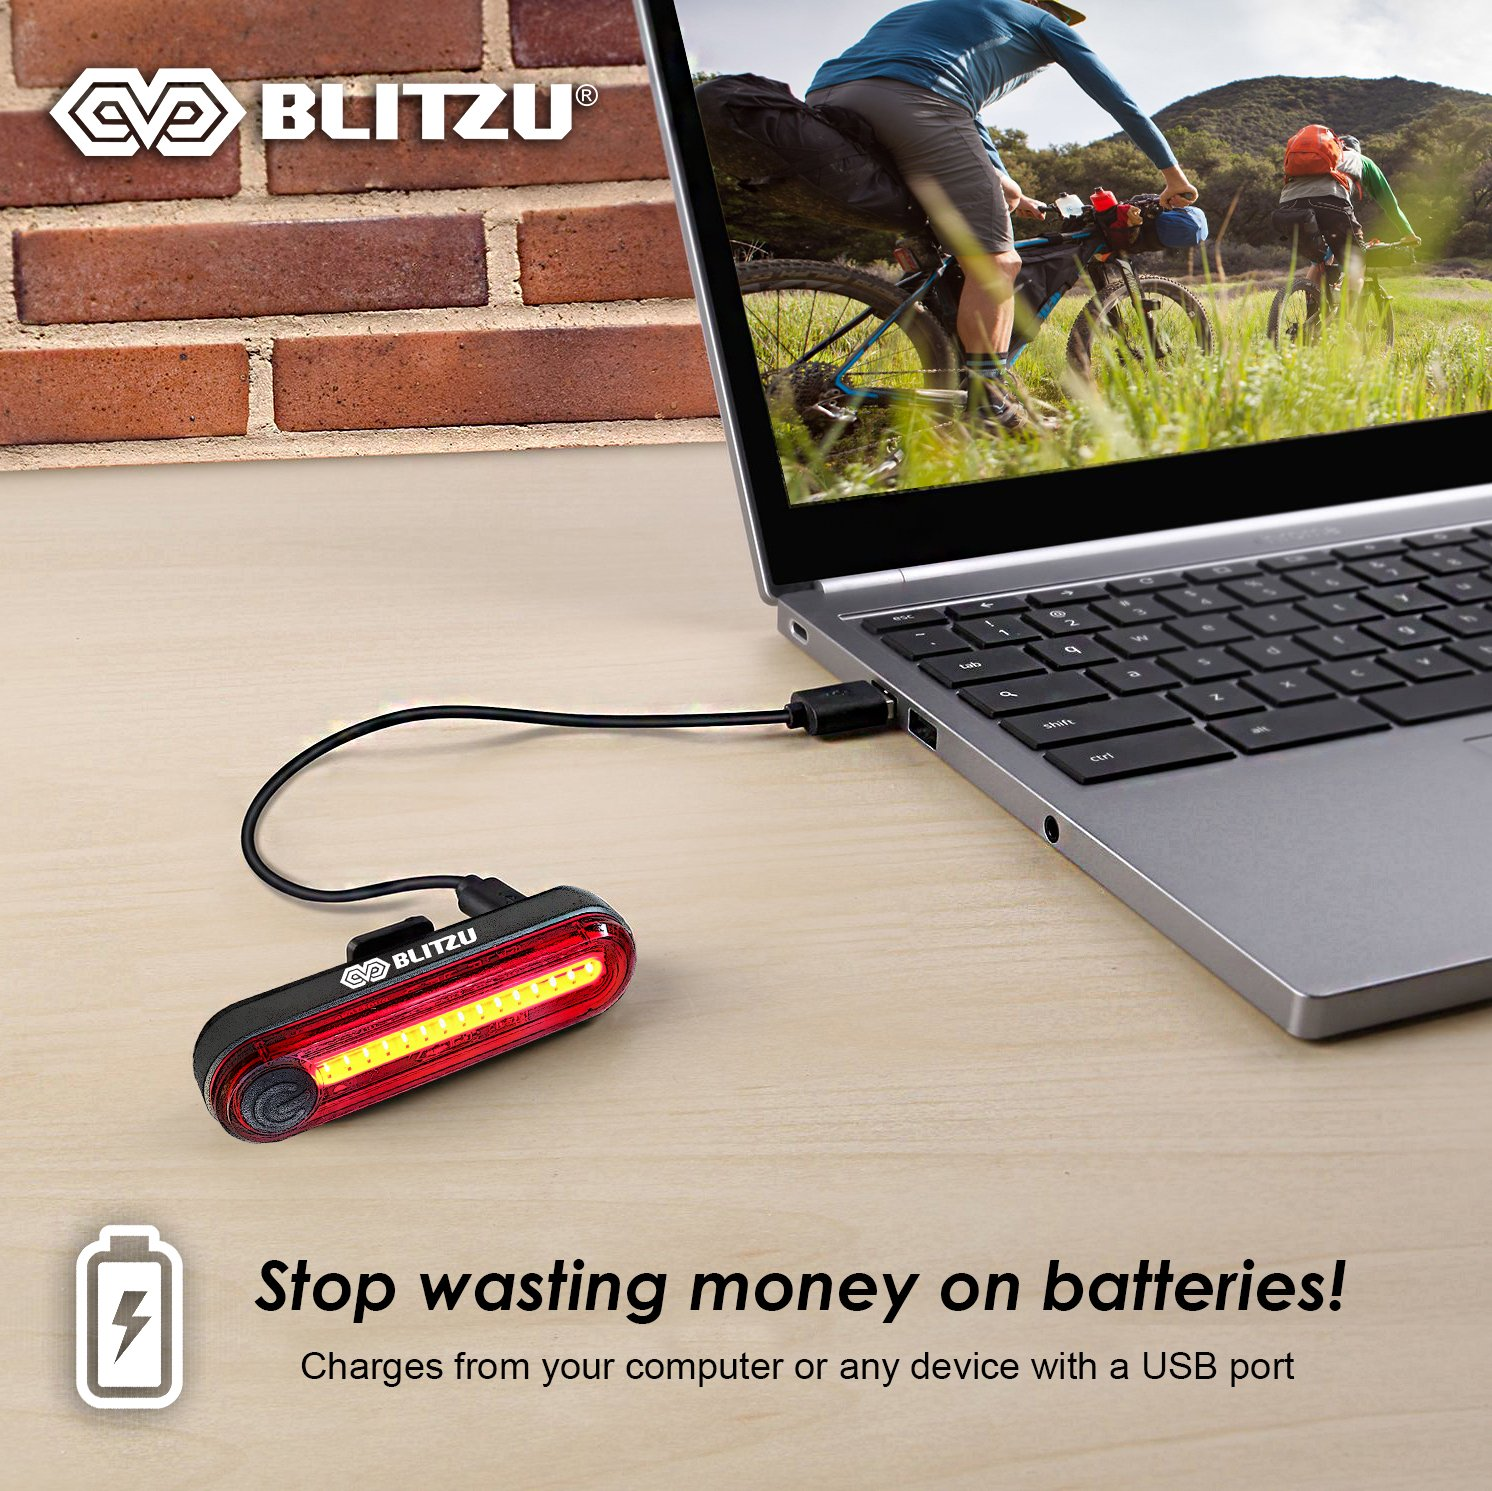 BLITZU Gator 380 USB Rechargeable Bike Light Set POWERFUL Lumens Bicycle Headlight FREE TAIL LIGHT, LED Front and Back Rear Lights Easy To Install for Kids Men Women Road Cycling Safety Flashlight by BLITZU (Image #4)